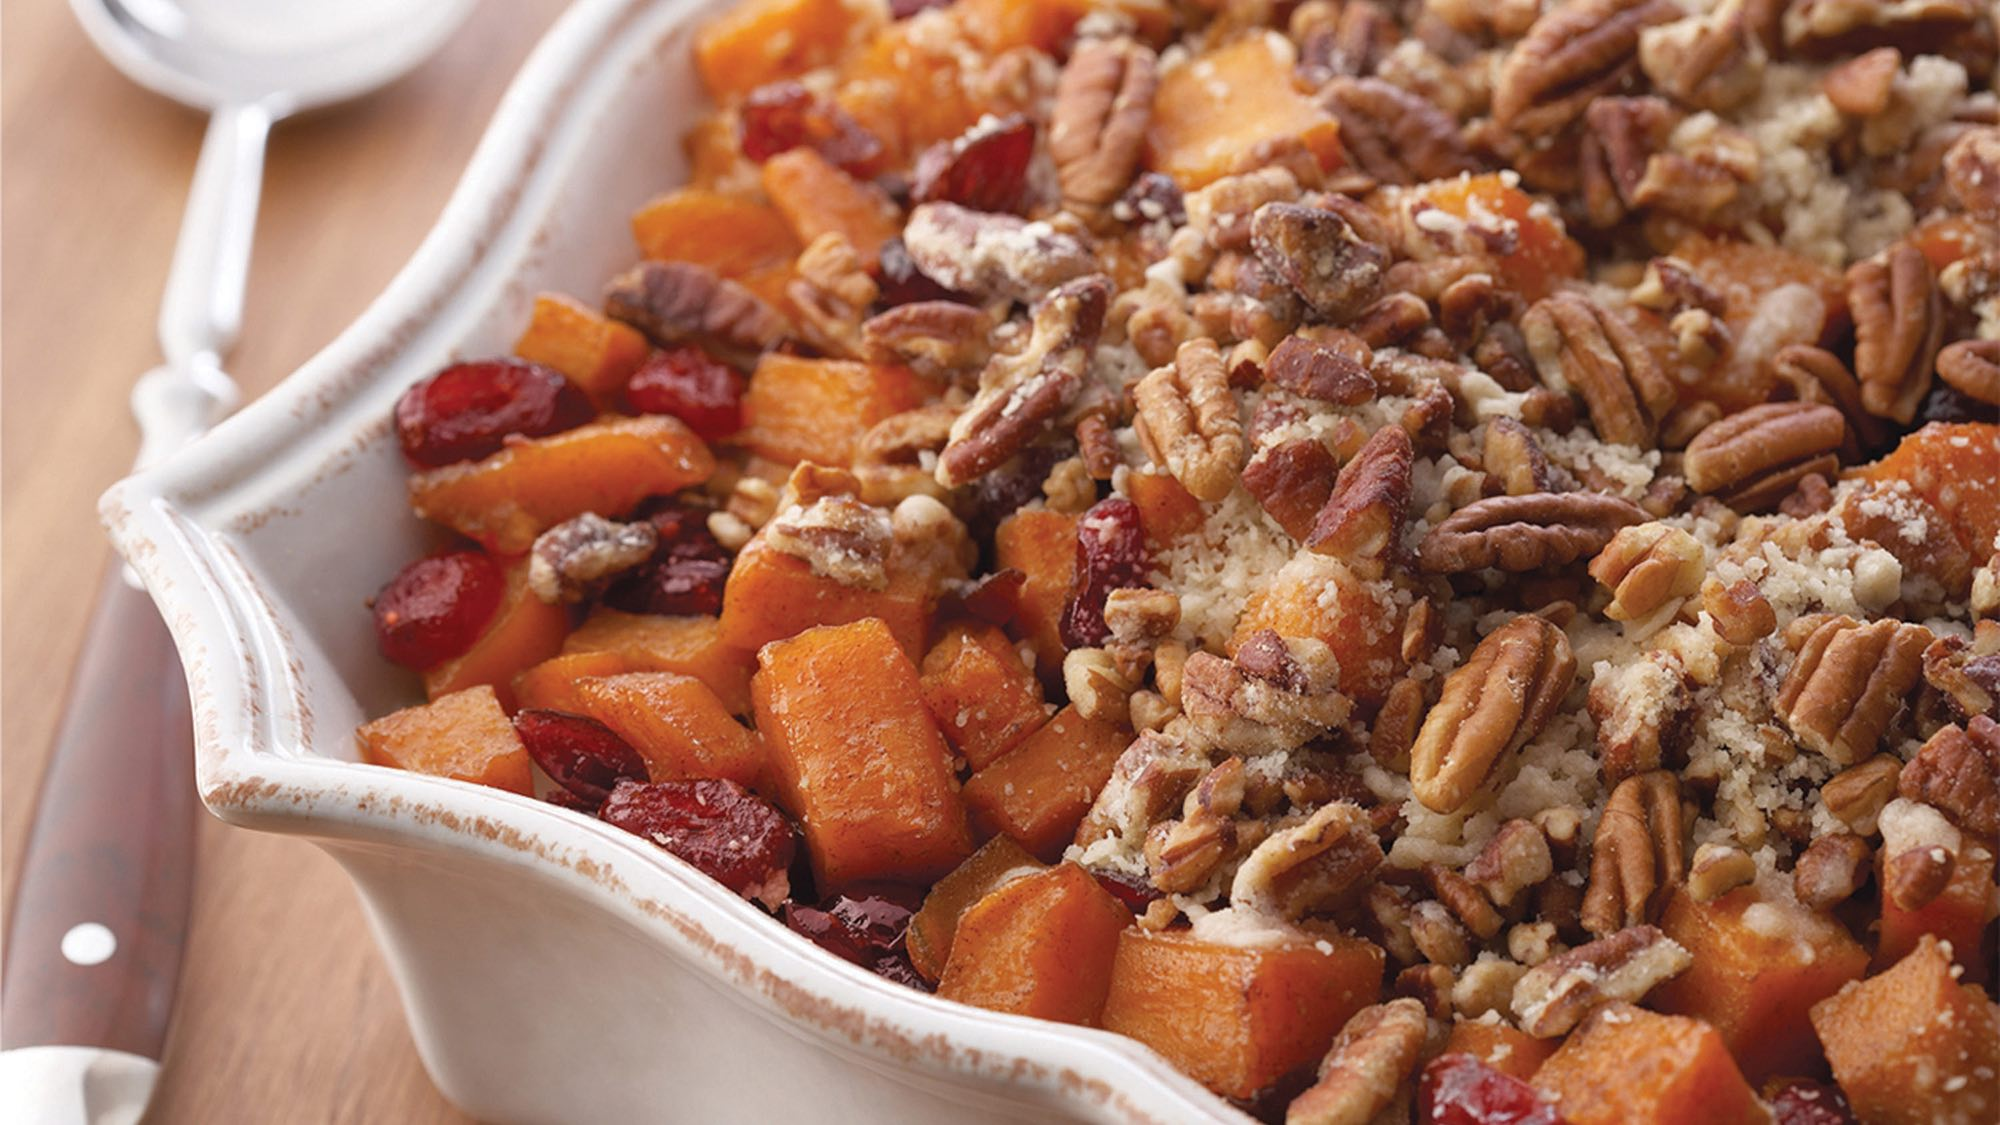 McCormick Roasted Sweet Potatoes with Cinnamon Pecan Crunch